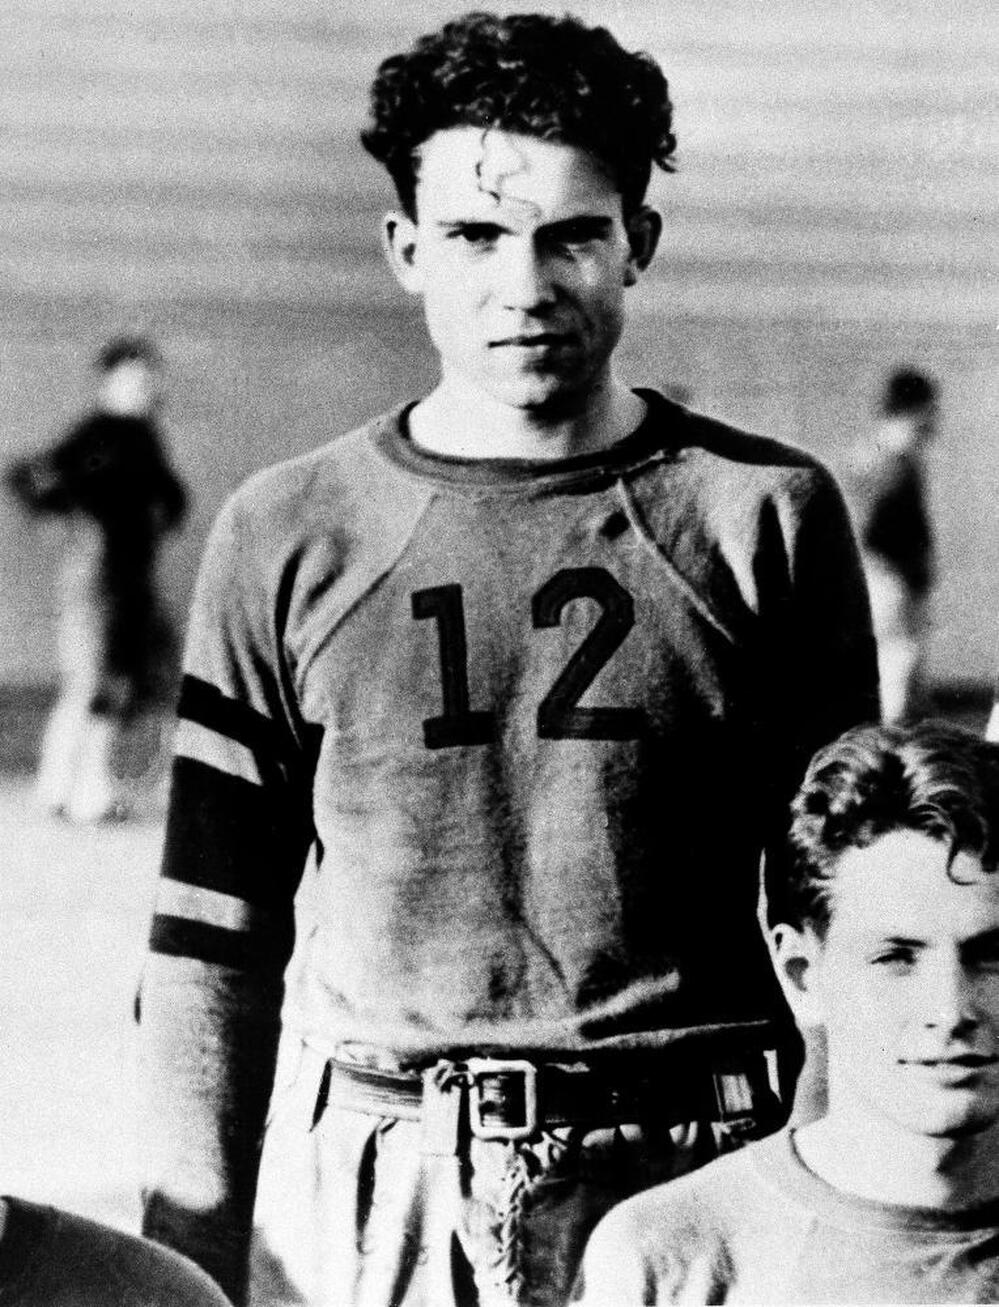 Richard Nixon is shown as a member of the Whittier College football squad in Whittier, Calif., circa 1930s.